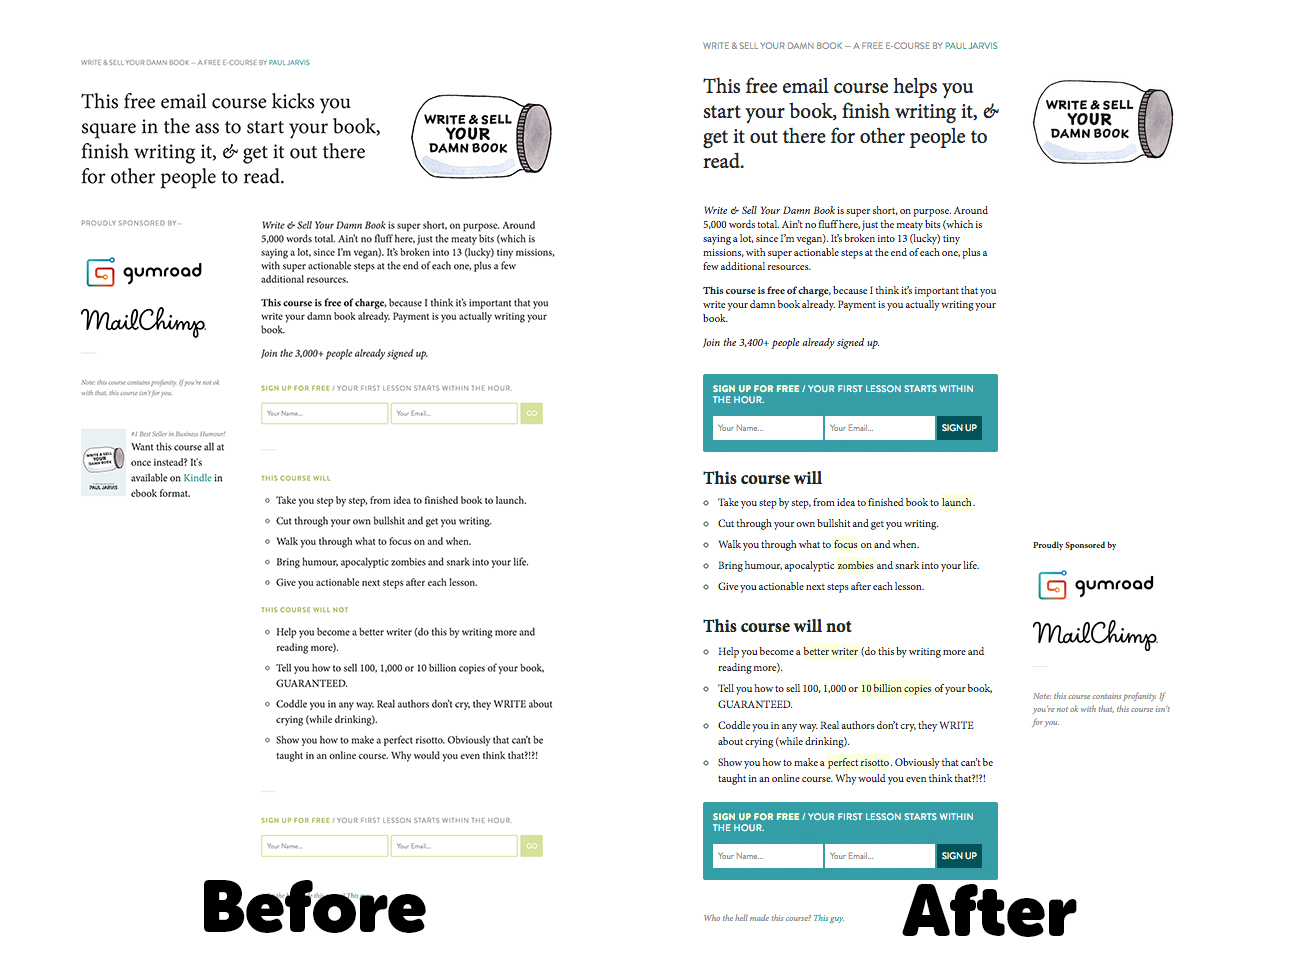 Paul Jarvis landing page example (before and after)